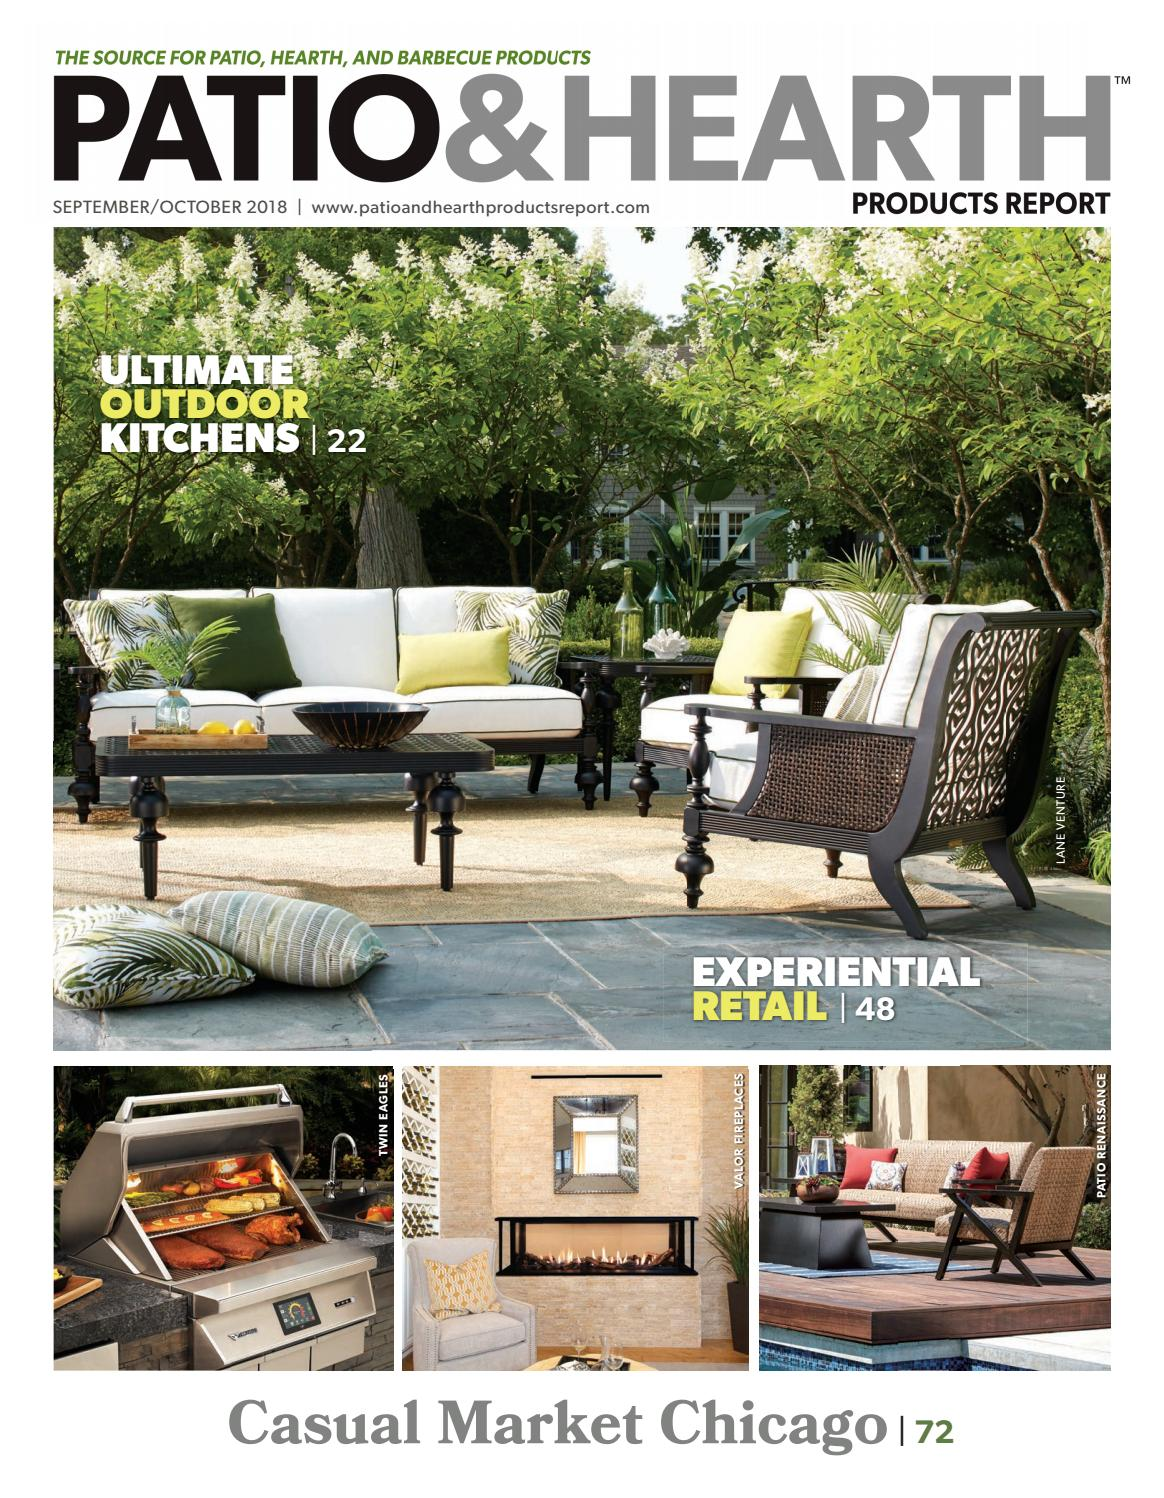 Outdoor Küche Fire Magic Patio Hearth Products Report September October 2018